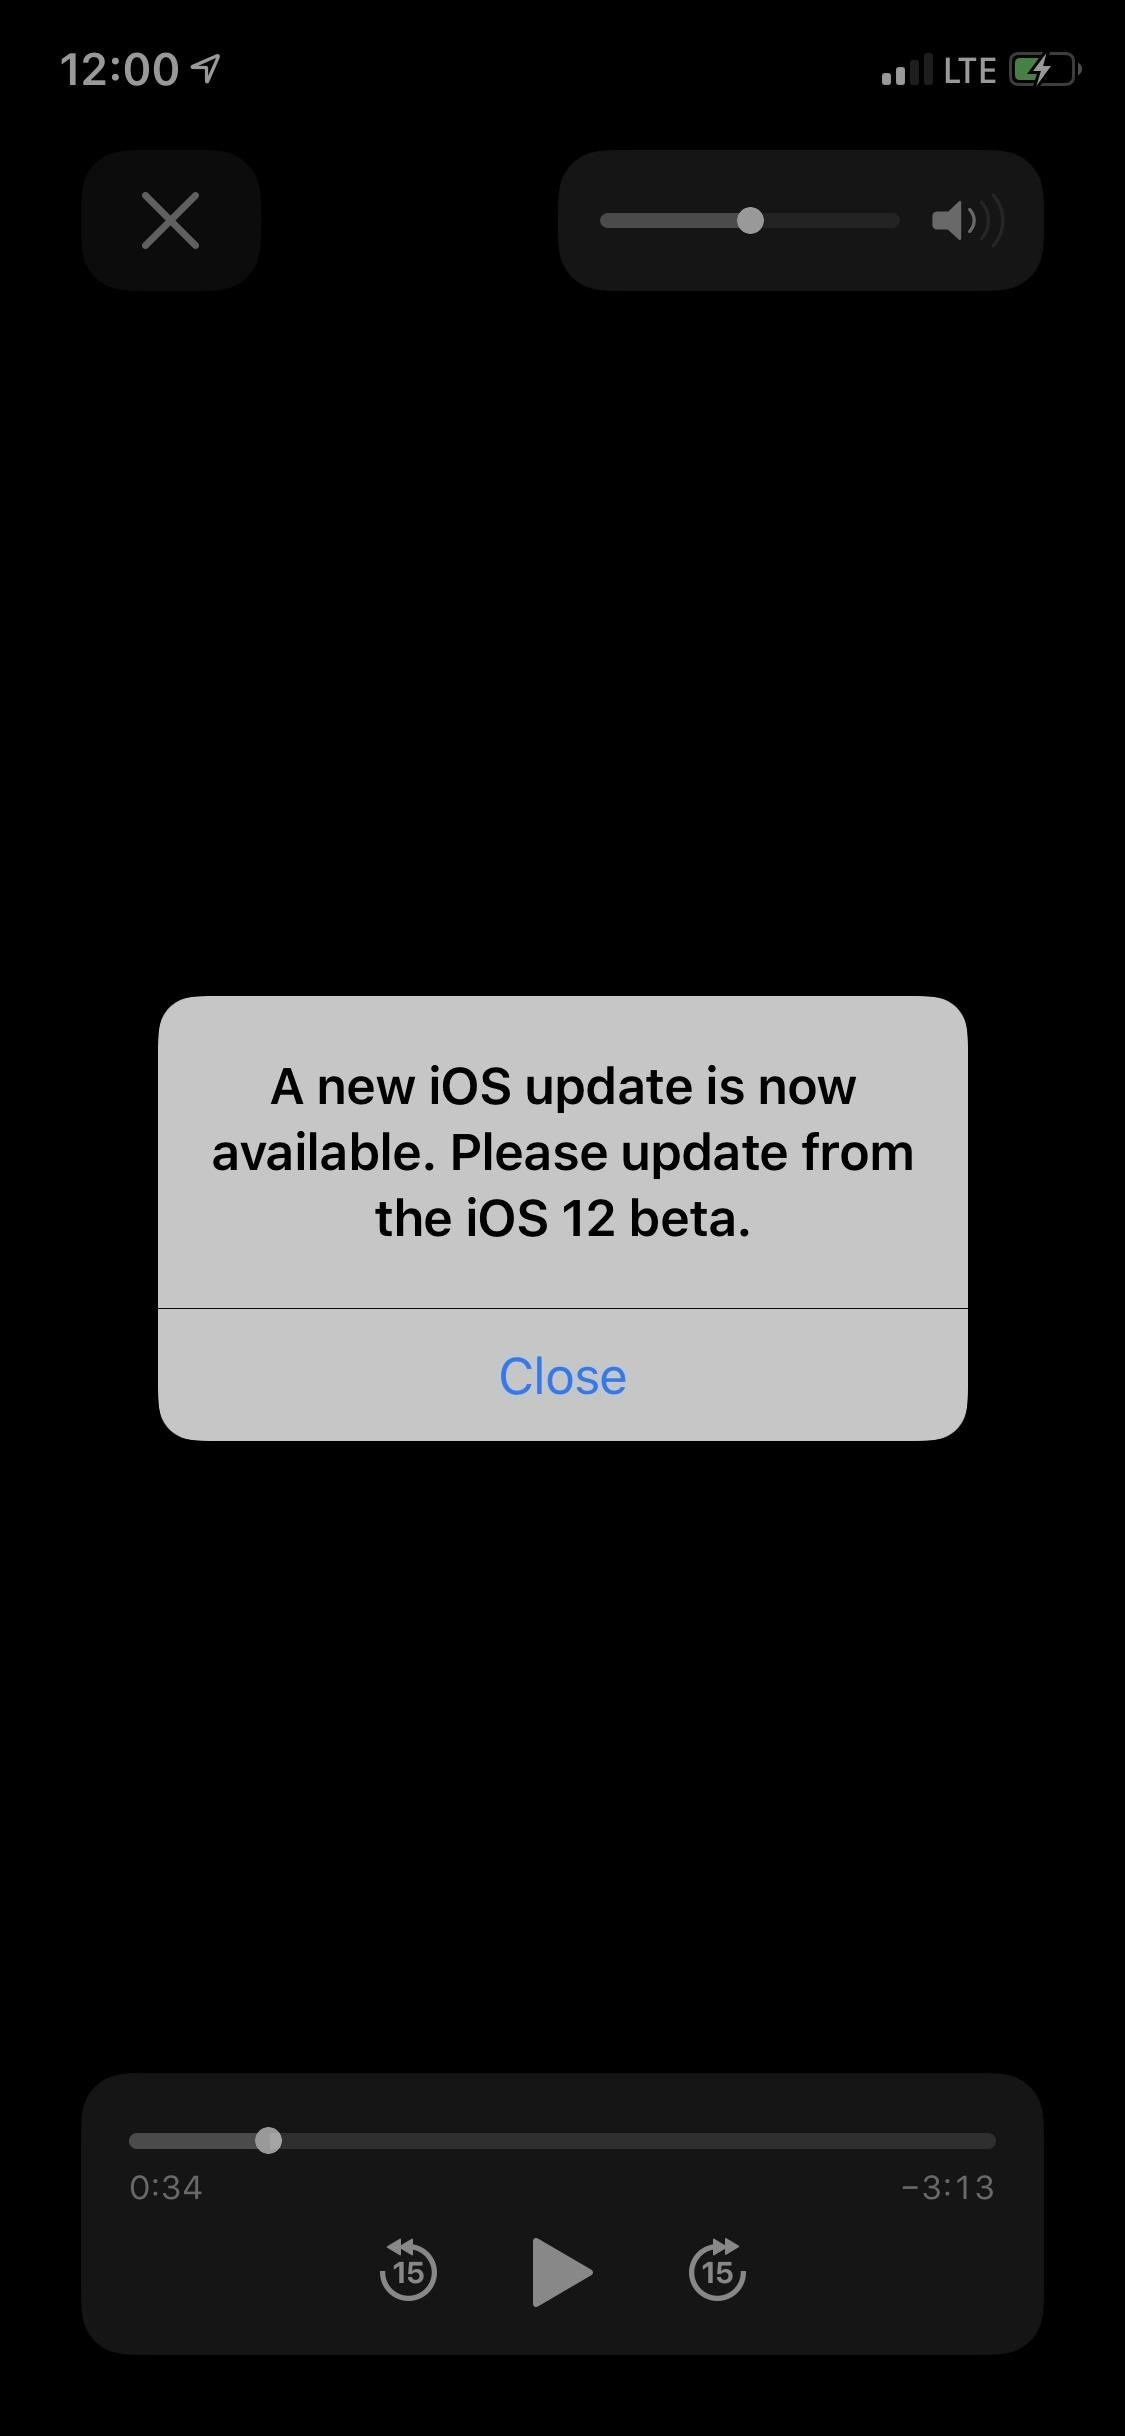 Apple has just released iOS 12 Beta 12 for iPhone to developers, corrects software update